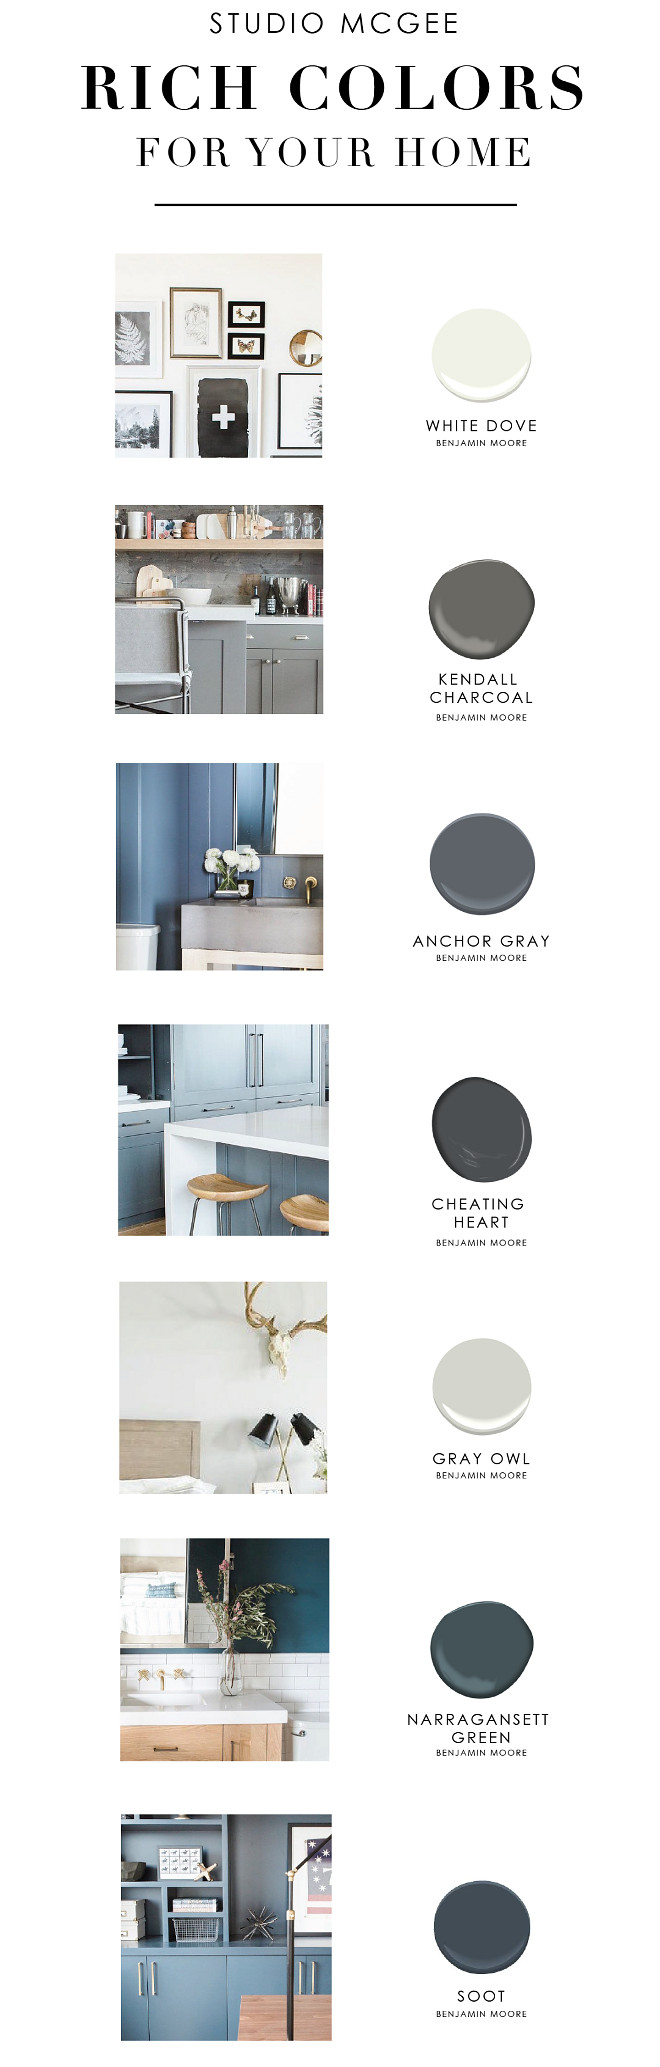 New and Fresh Paint Colors for your Home White Dove by Benjamin Moore, Kendall Charcoal by Benjamin Moore, Anchor Gray by Benjamin Moore, Cheating Heart by Benjamin Moore, Gray Owl by Benjamin Moore, Narragansett Green by Benjamin Moore